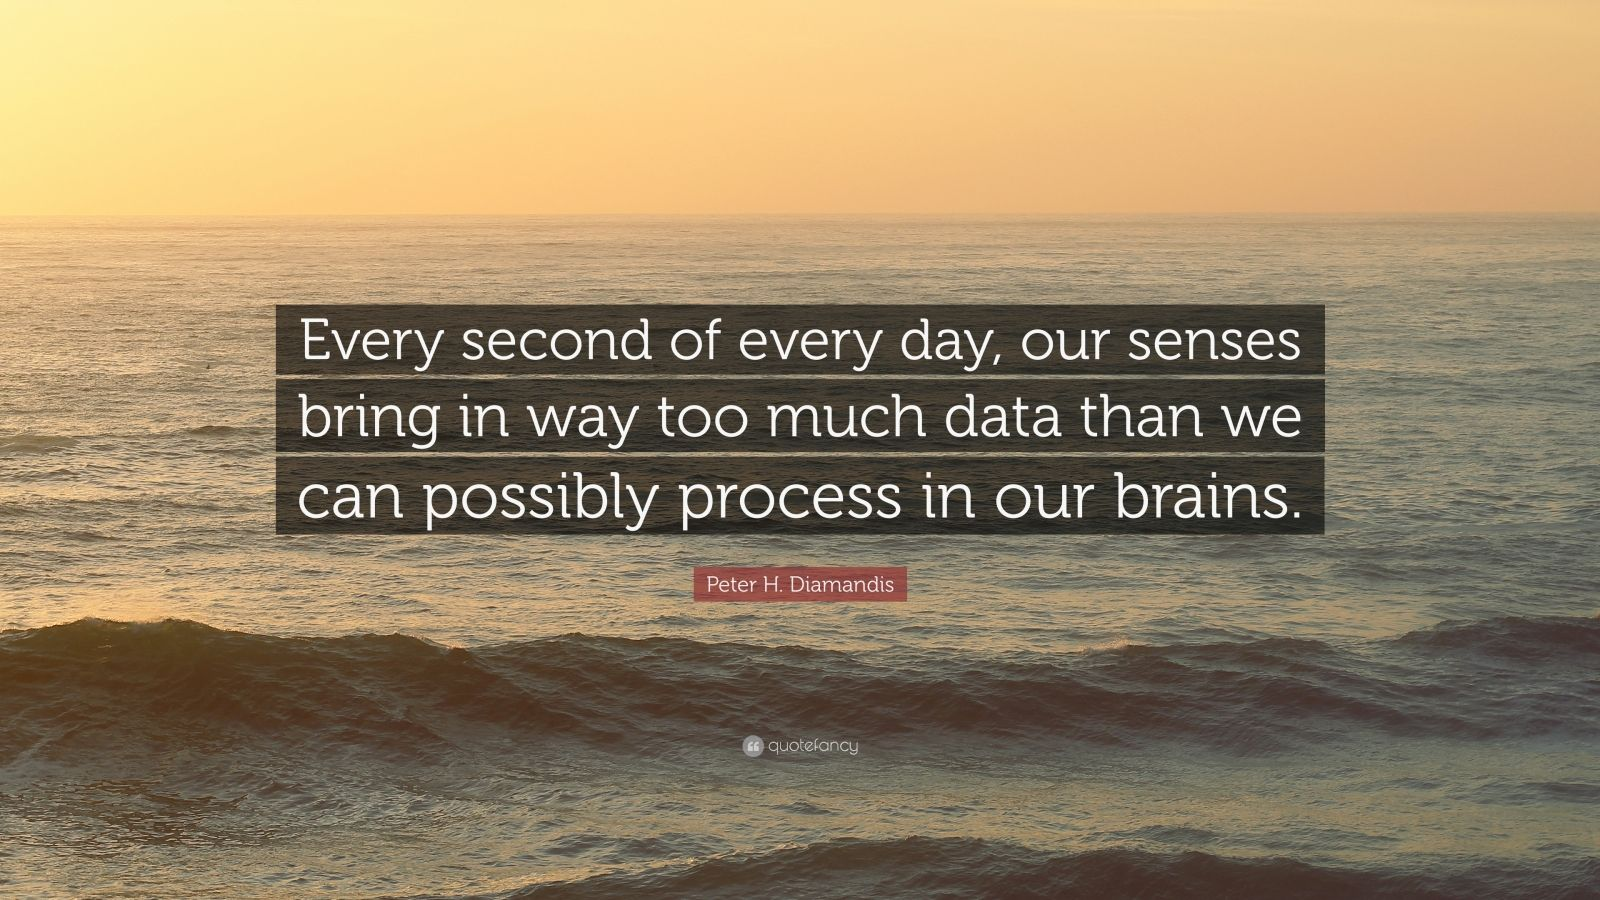 "Peter H. Diamandis Quote: ""Every second of every day, our senses bring in way too much data than we can possibly process in our brains."""